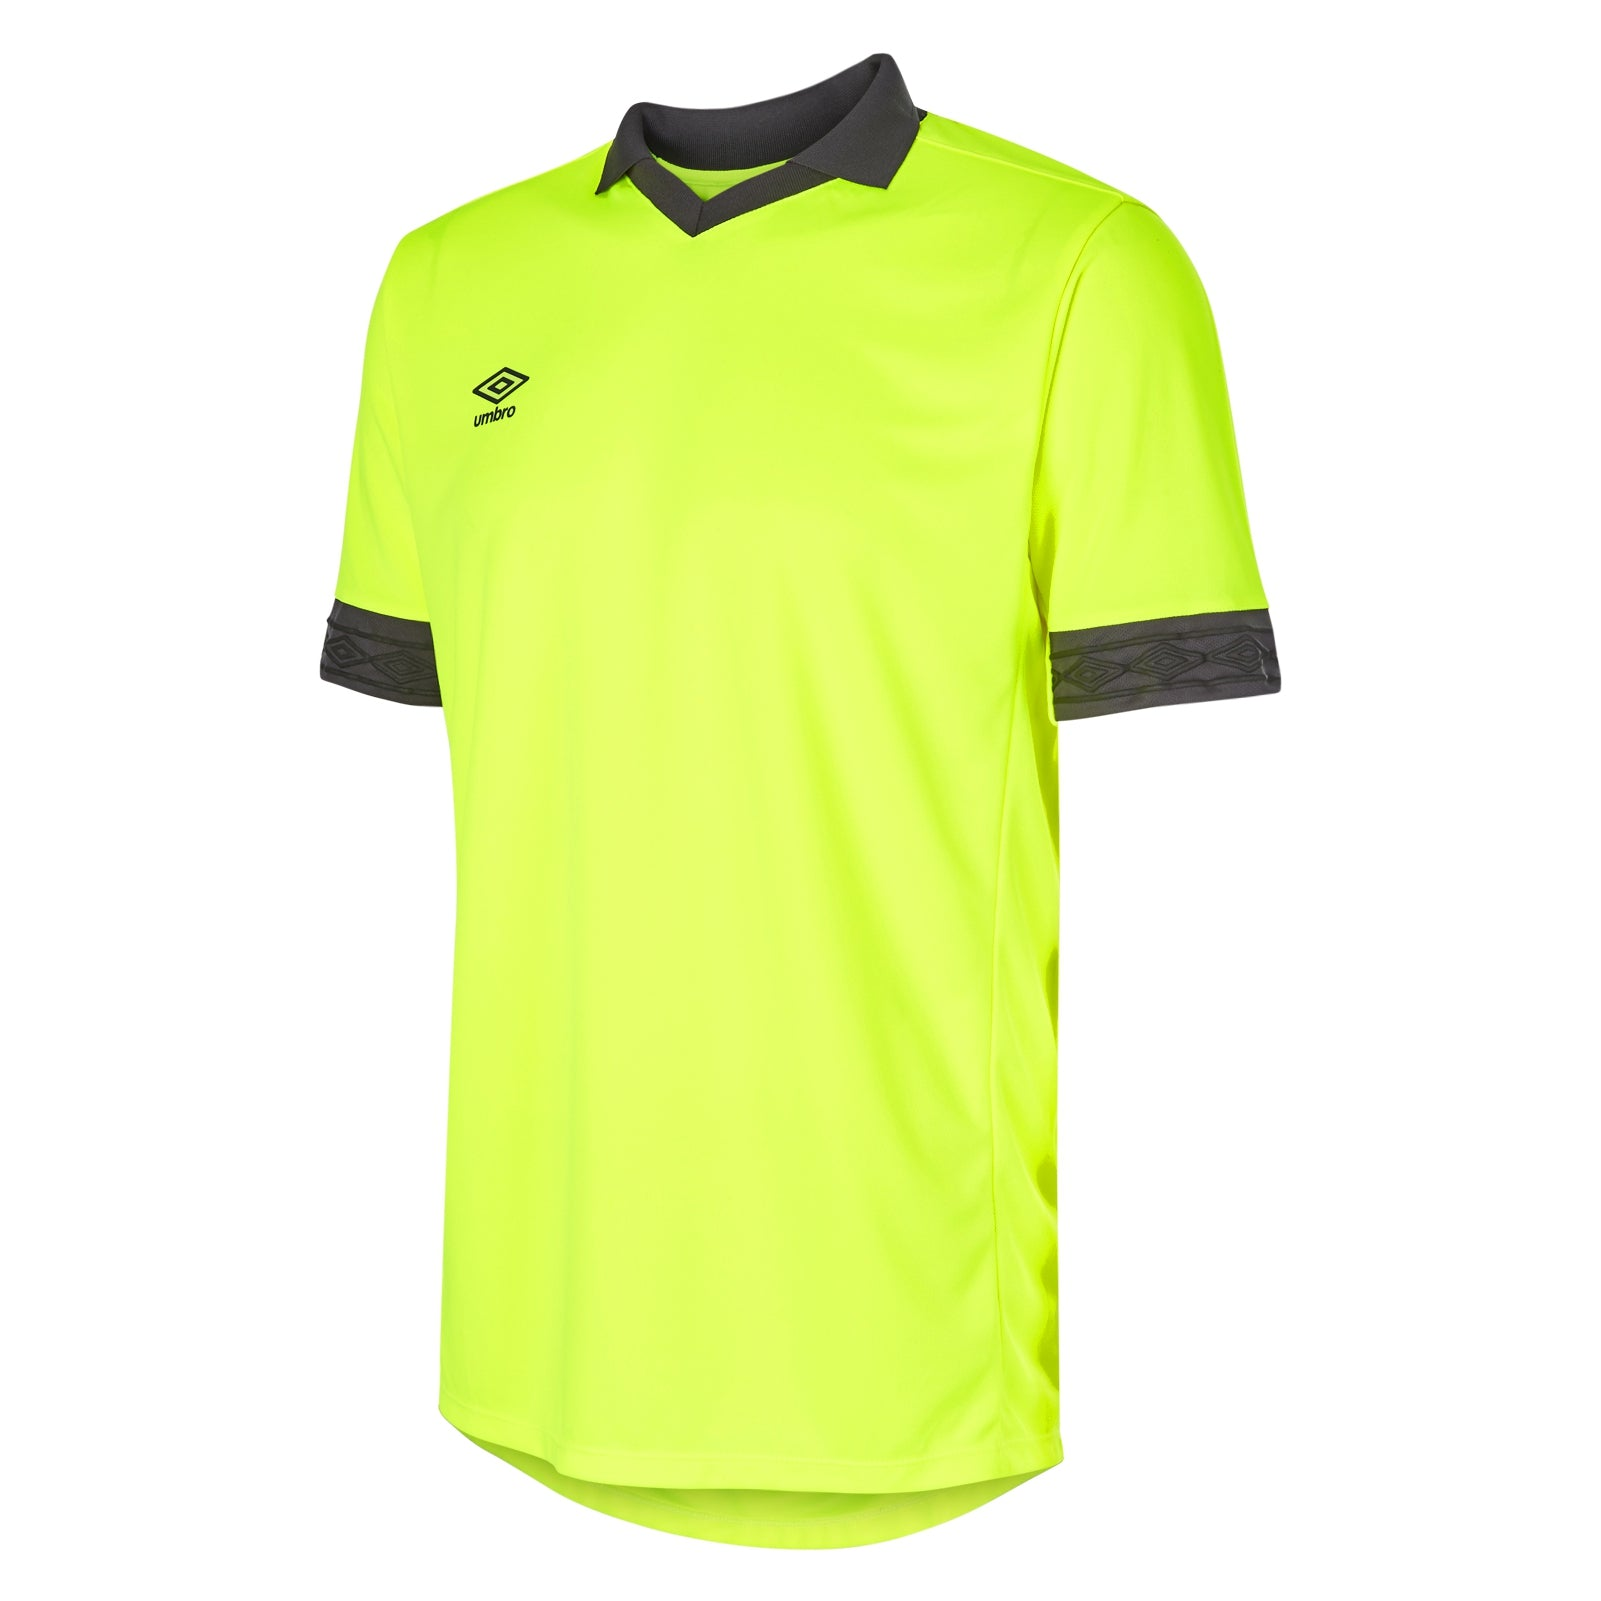 Umbro Tempest jersey short sleeve in fluorescent safety yellow with contrast carbon collar and cuff